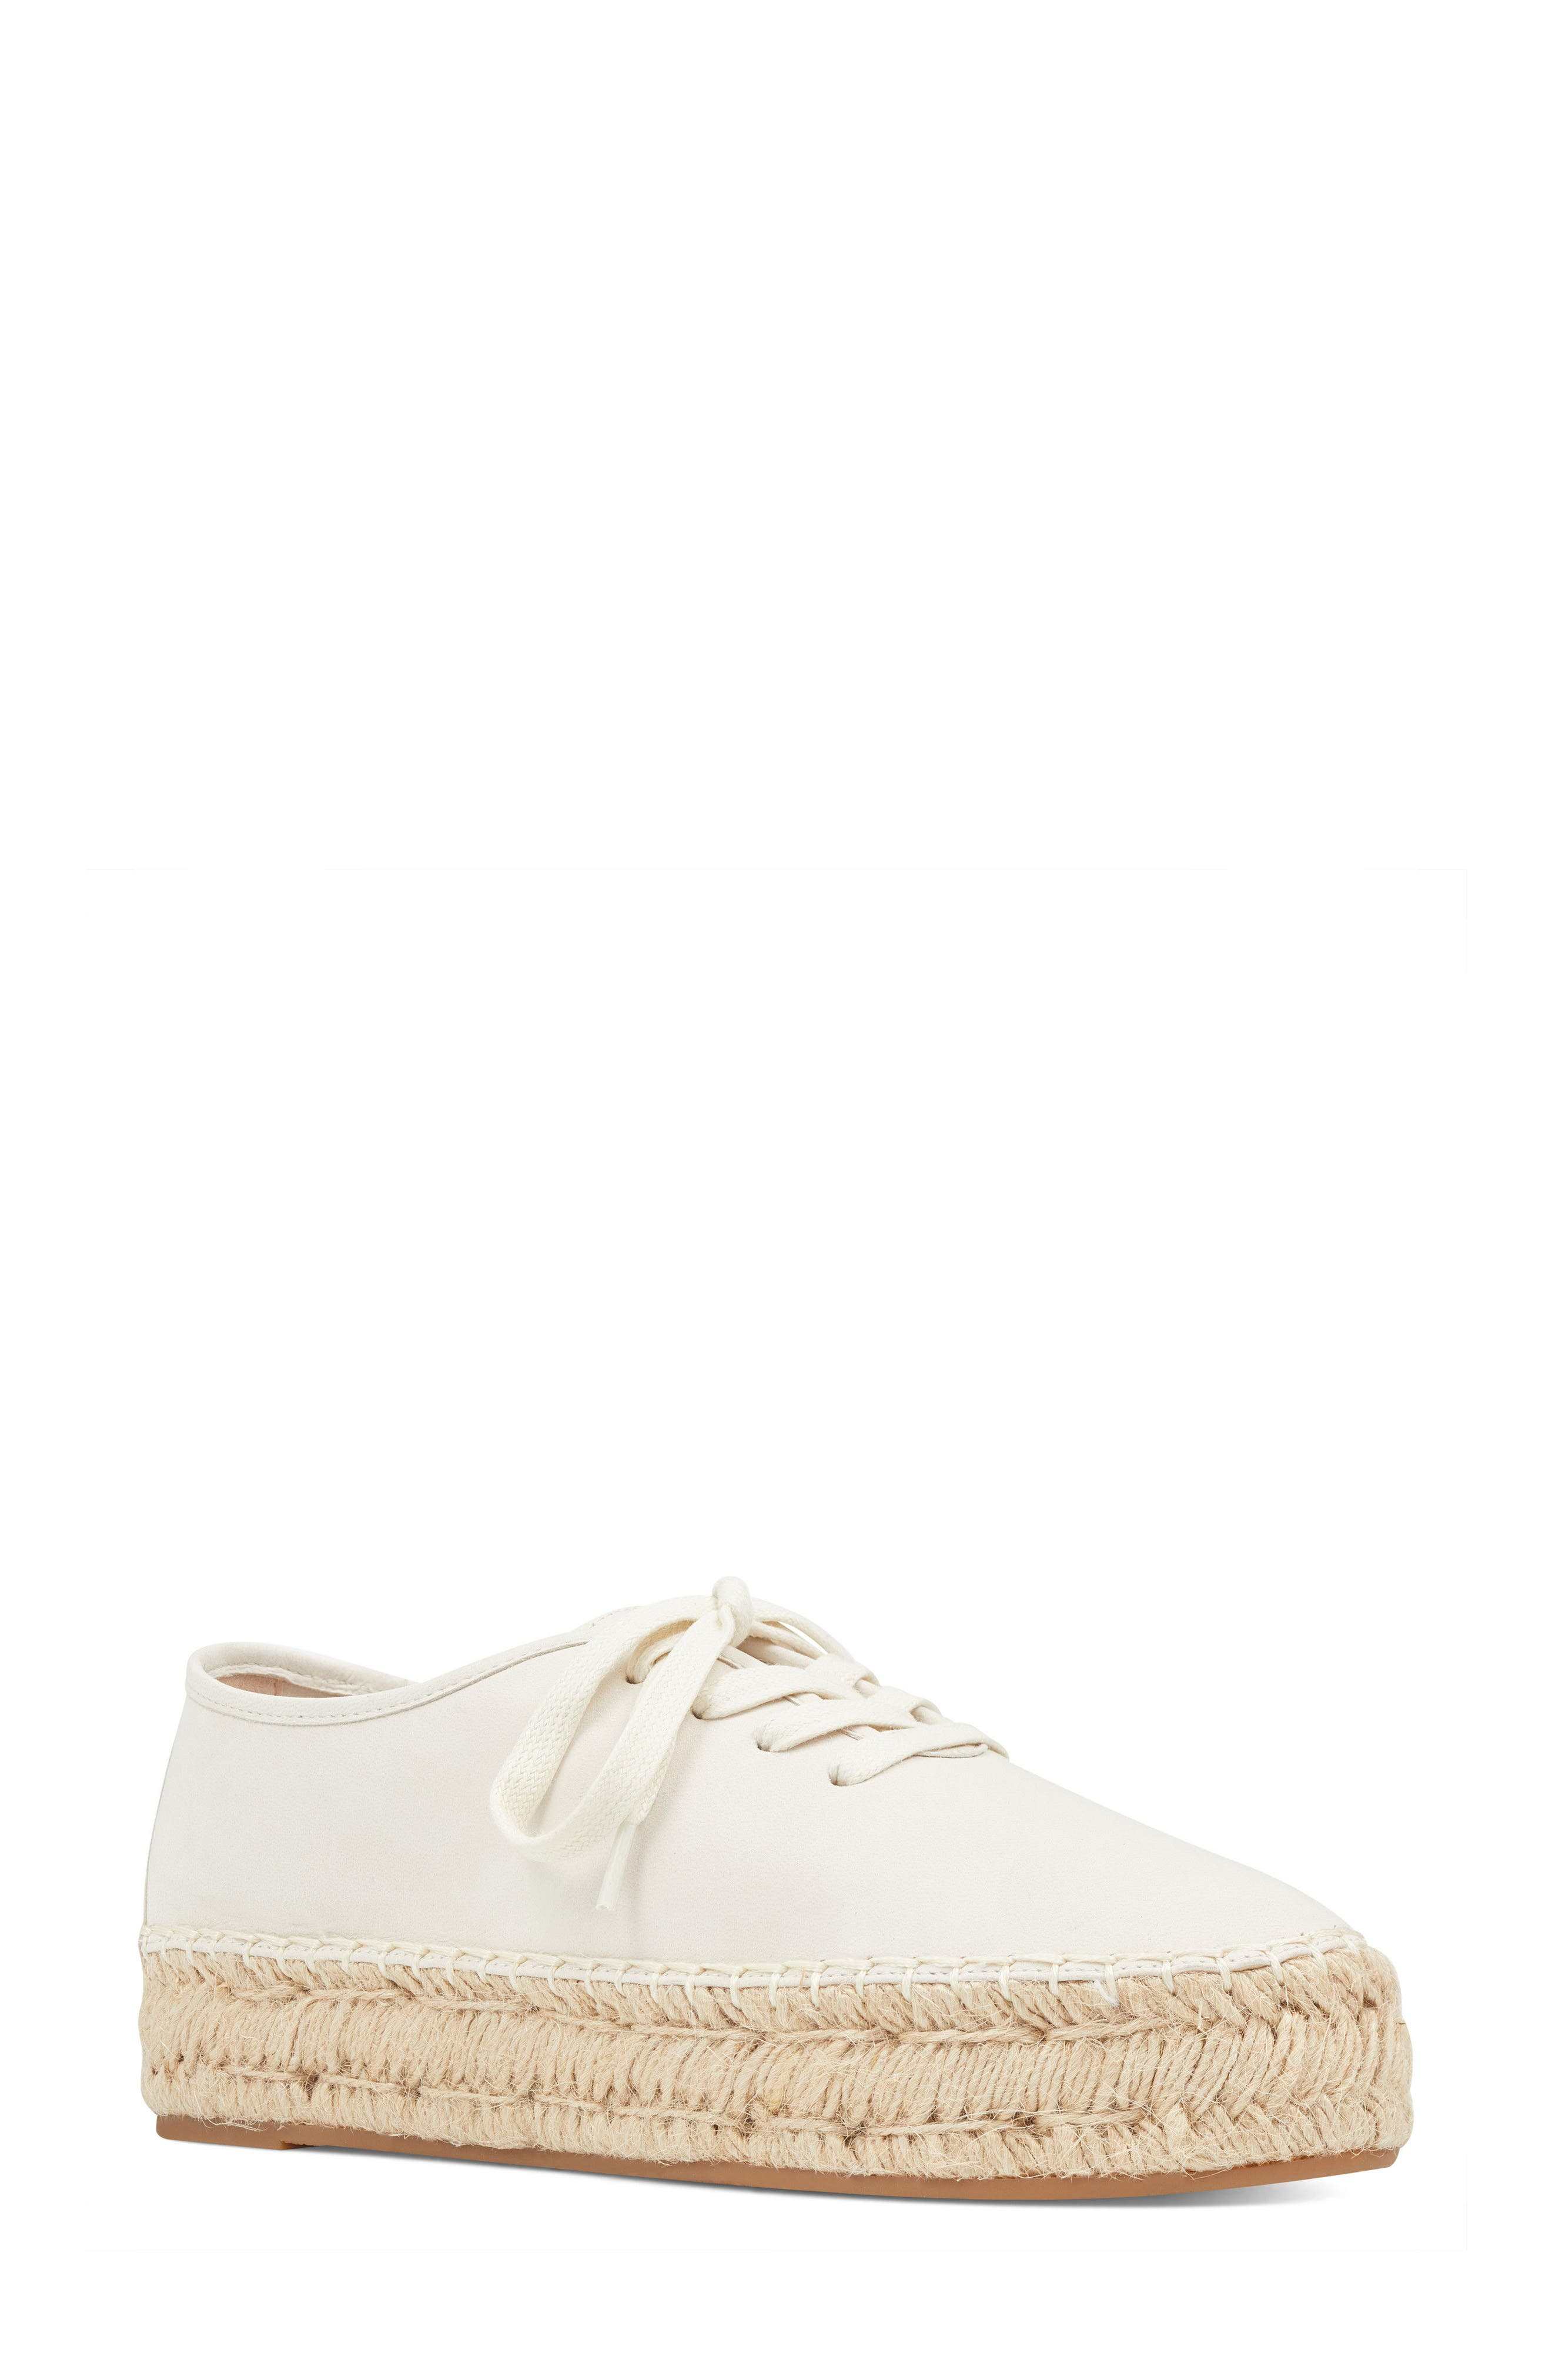 Gingerbread Espadrille Sneaker,                             Main thumbnail 1, color,                             OFF WHITE LEATHER